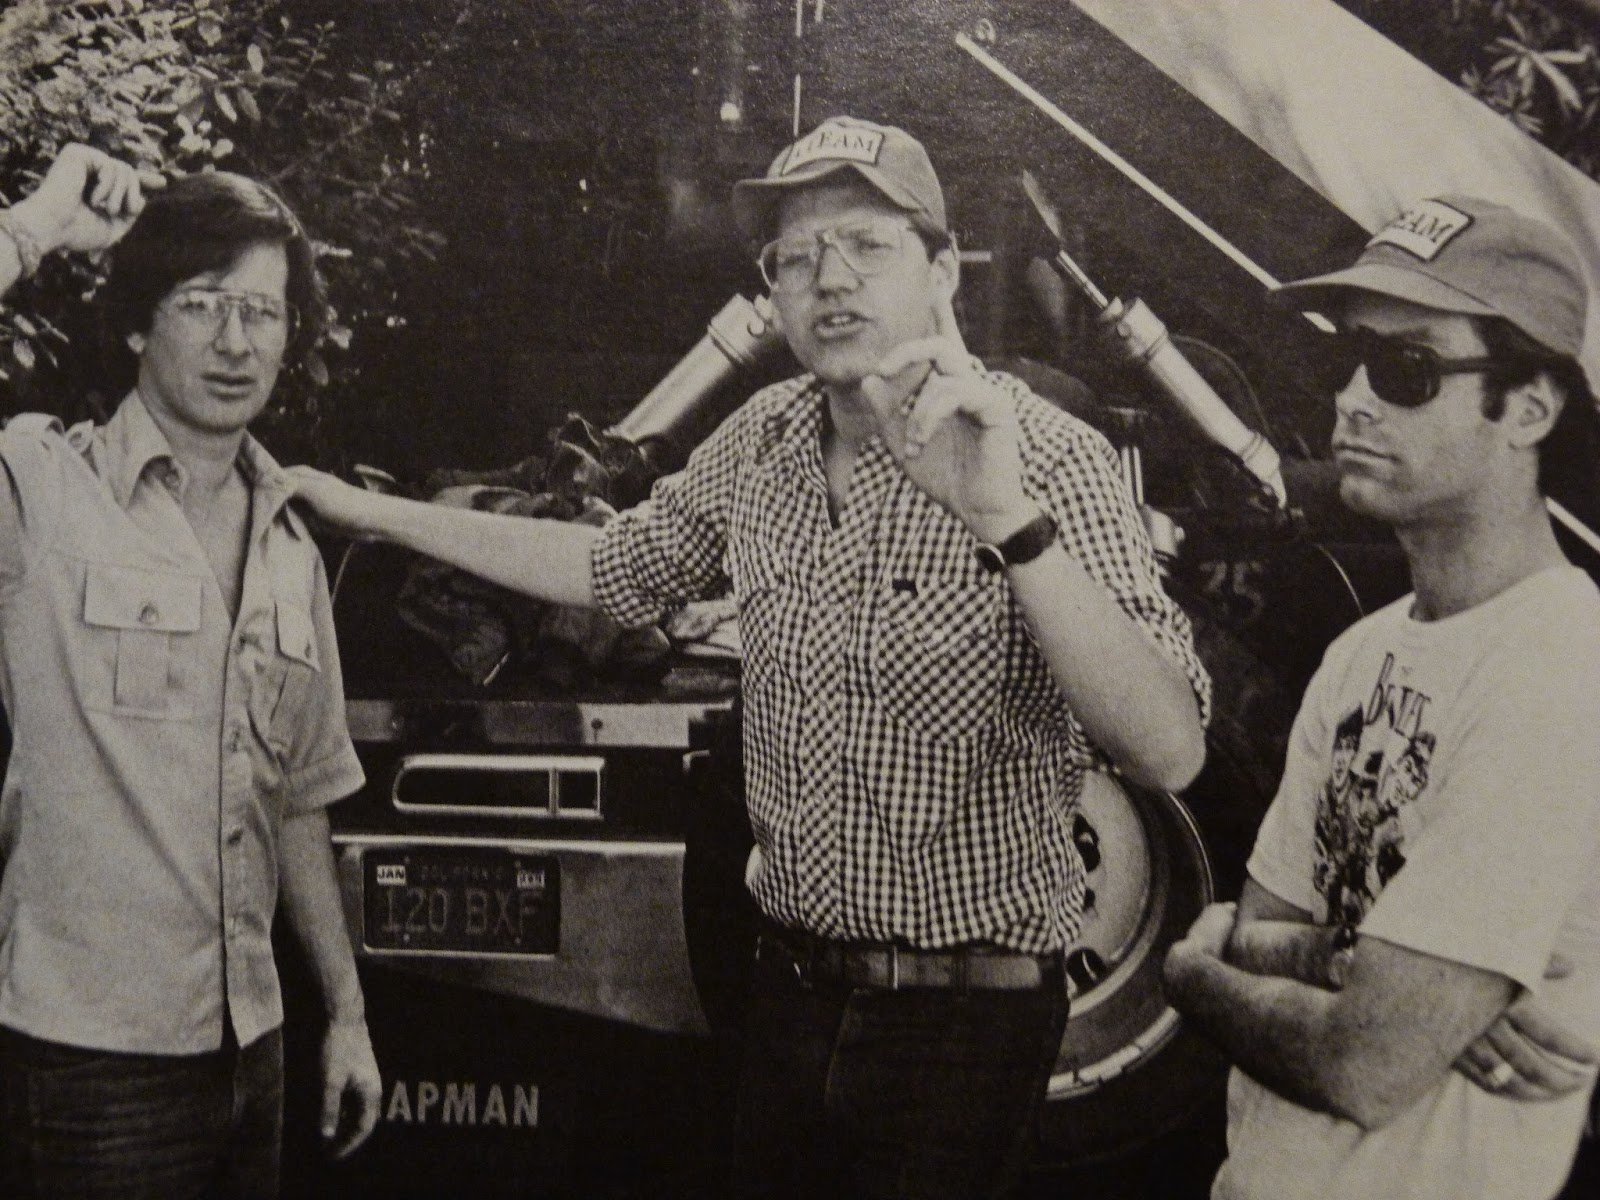 Steven Spielberg, together with Robert Zemeckis and Bob Gale